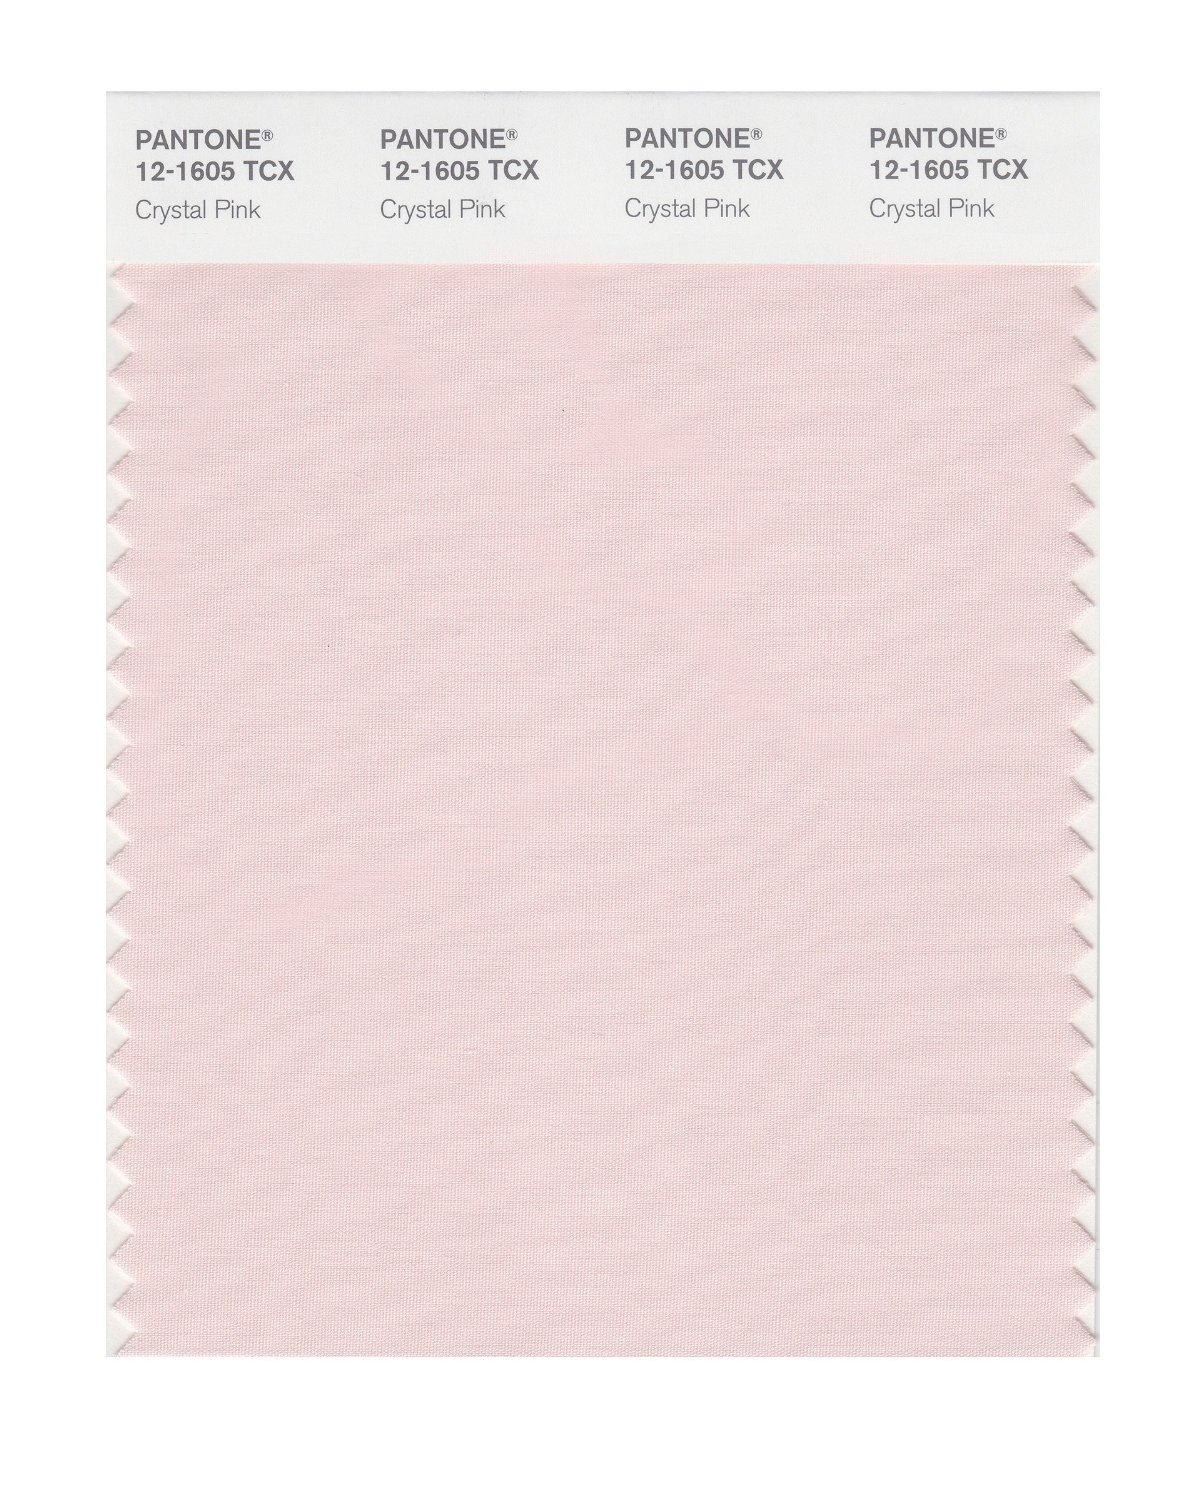 Pantone Smart Swatch 12-1605 Crystal Pink